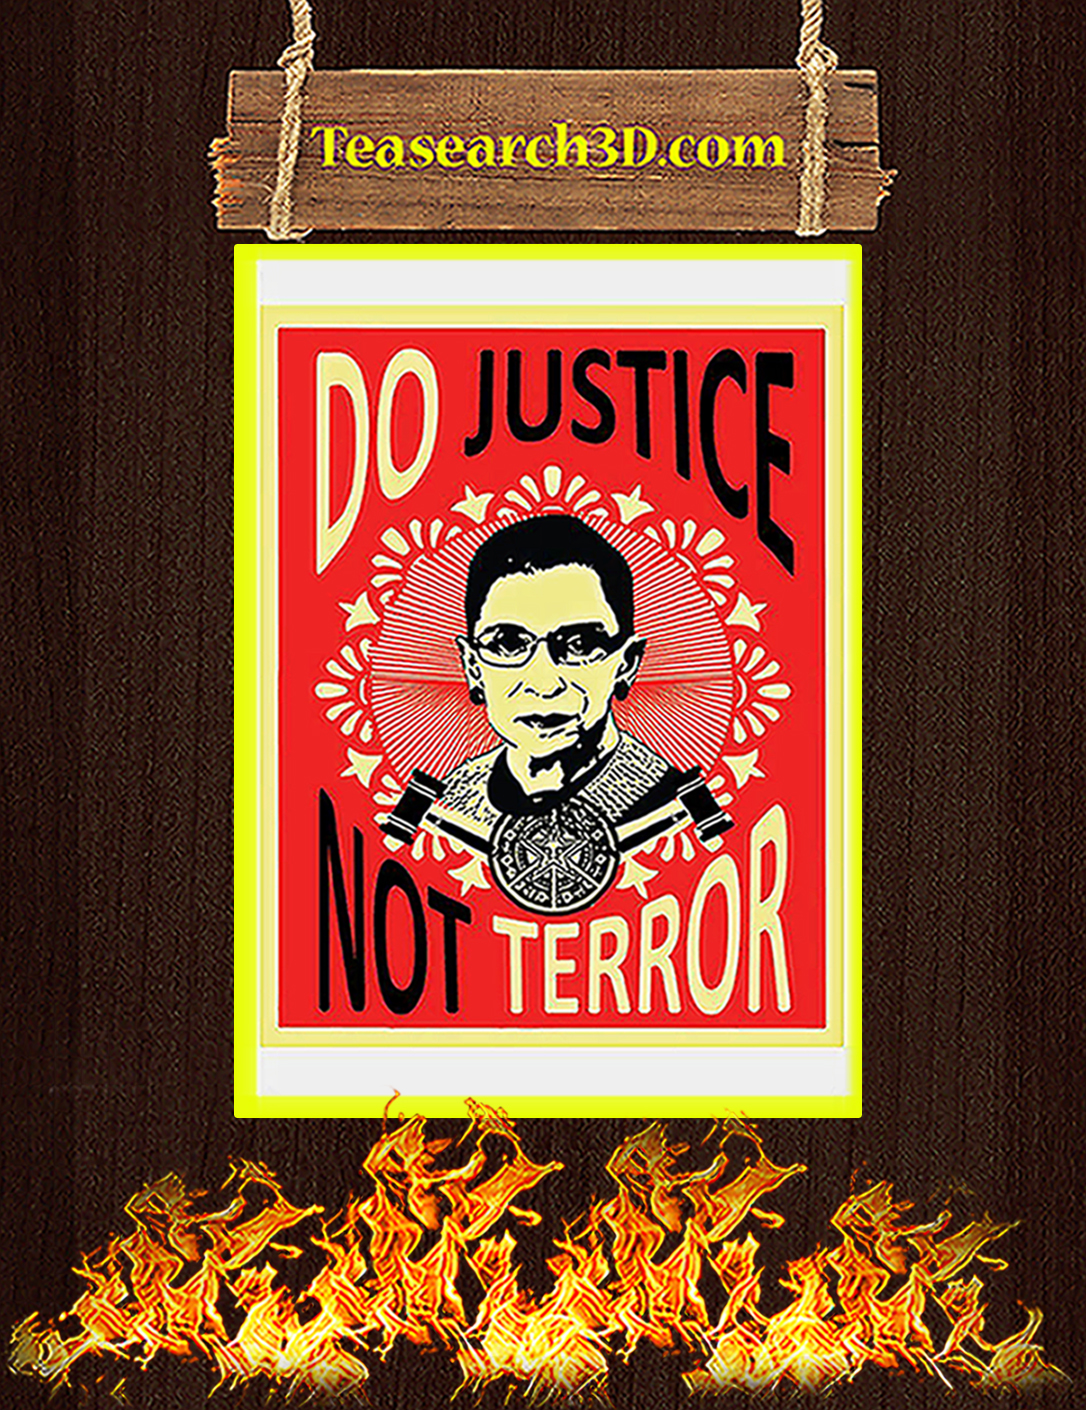 Do justice not terror Ruth bader ginsburg poster A2